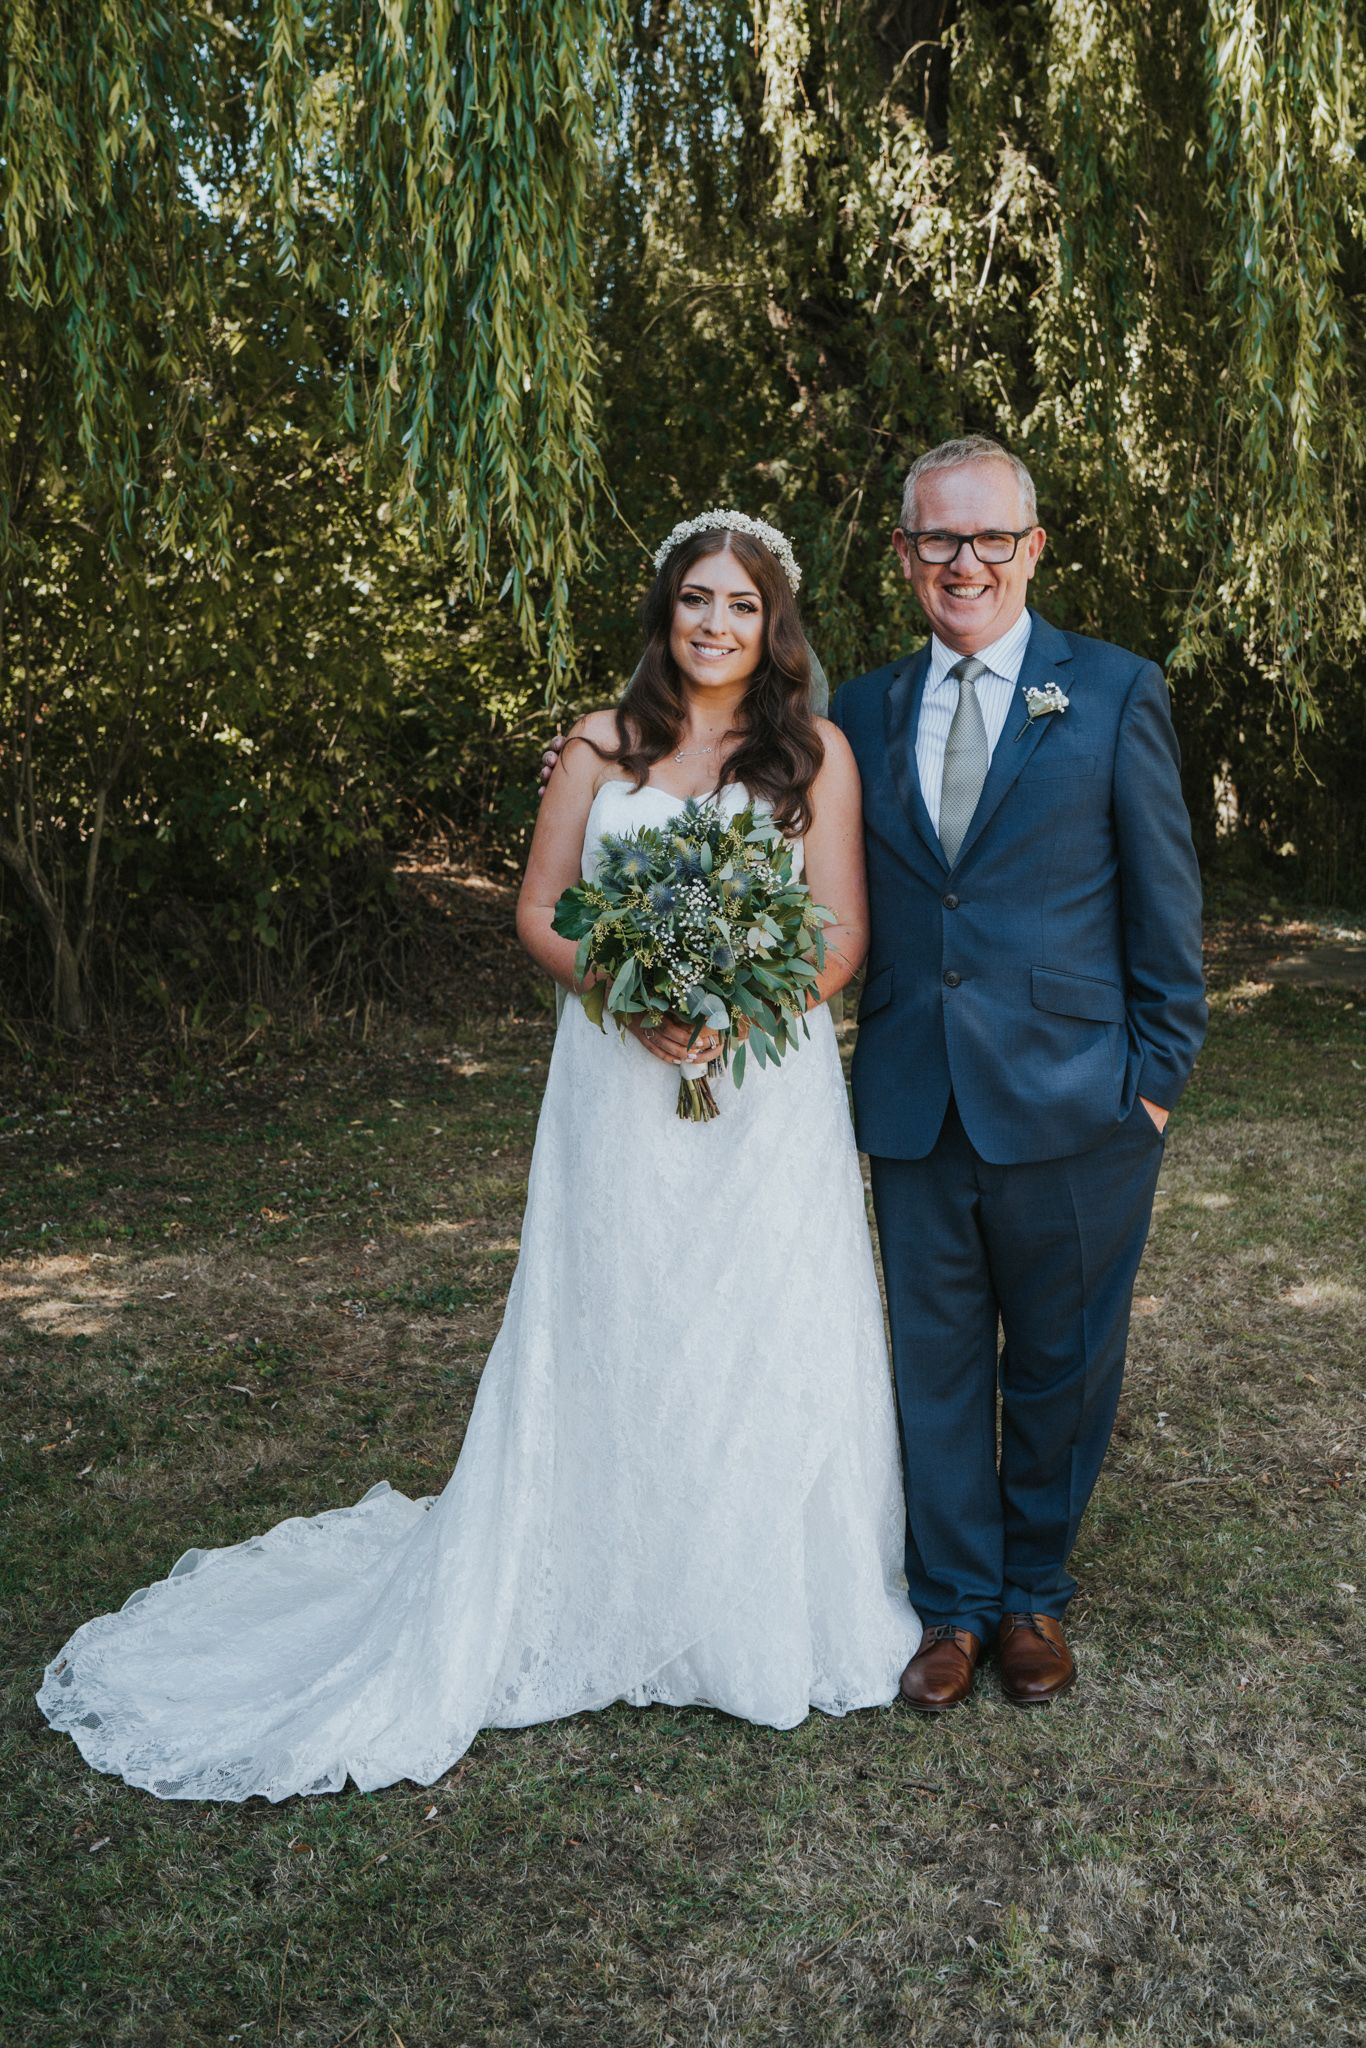 Beautifully romantic wedding on a diy budget bride and father